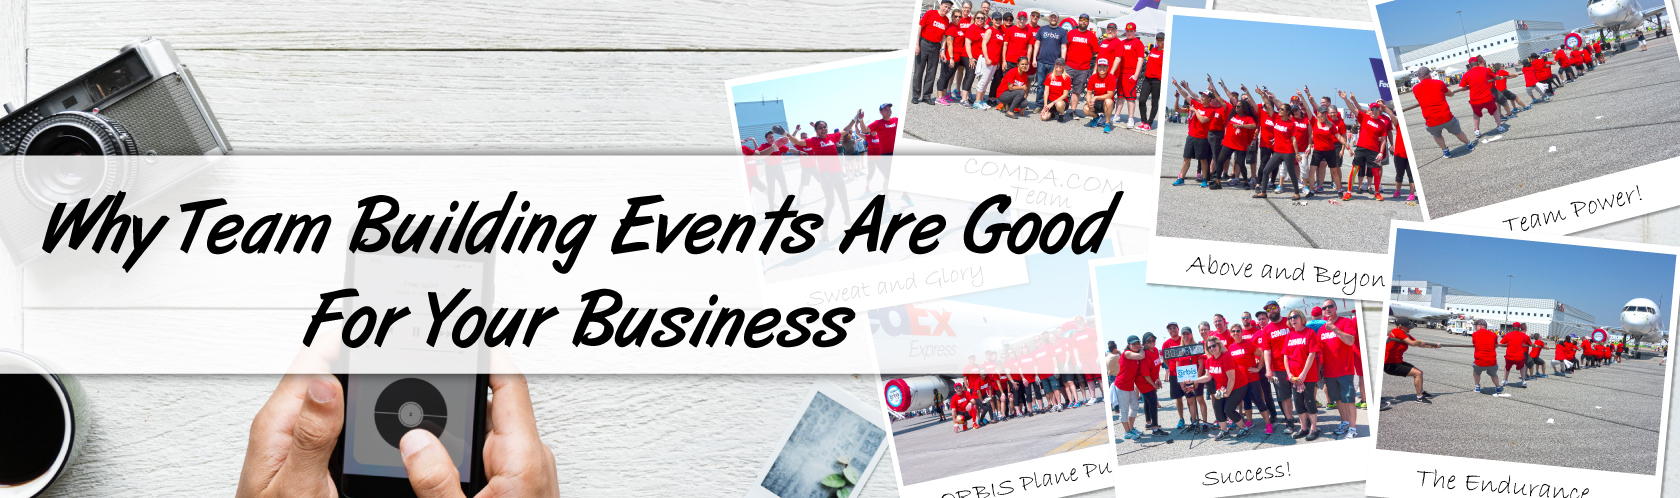 Why Team Building Events Are Good For Your Business